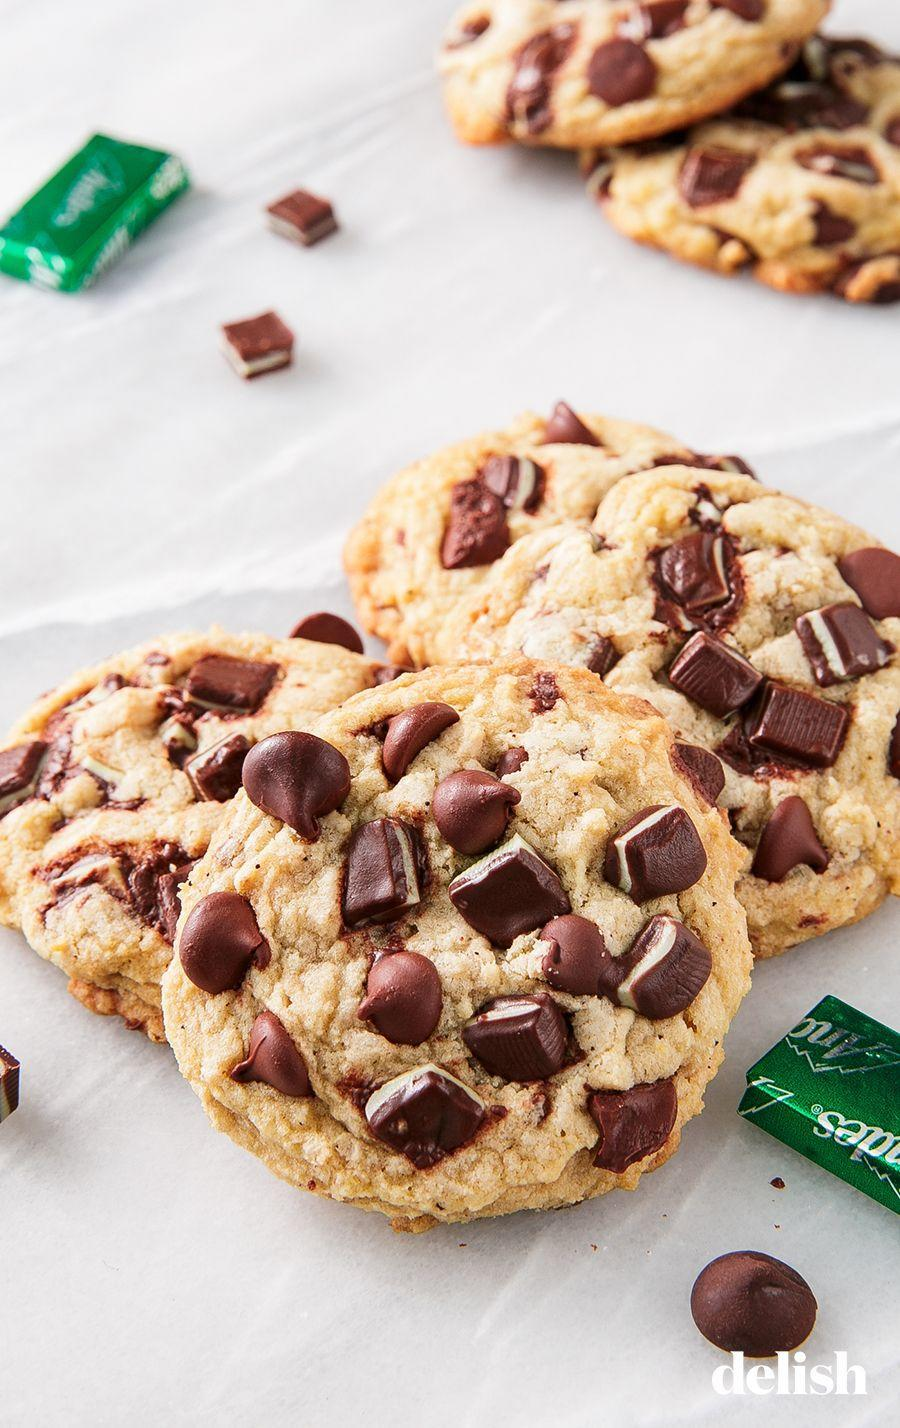 """<p>Smell ya later, thin mints.</p><p>Get the recipe from <a href=""""https://www.delish.com/holiday-recipes/christmas/a25440155/andes-chip-cookies-recipe/"""" rel=""""nofollow noopener"""" target=""""_blank"""" data-ylk=""""slk:Delish"""" class=""""link rapid-noclick-resp"""">Delish</a>.</p>"""